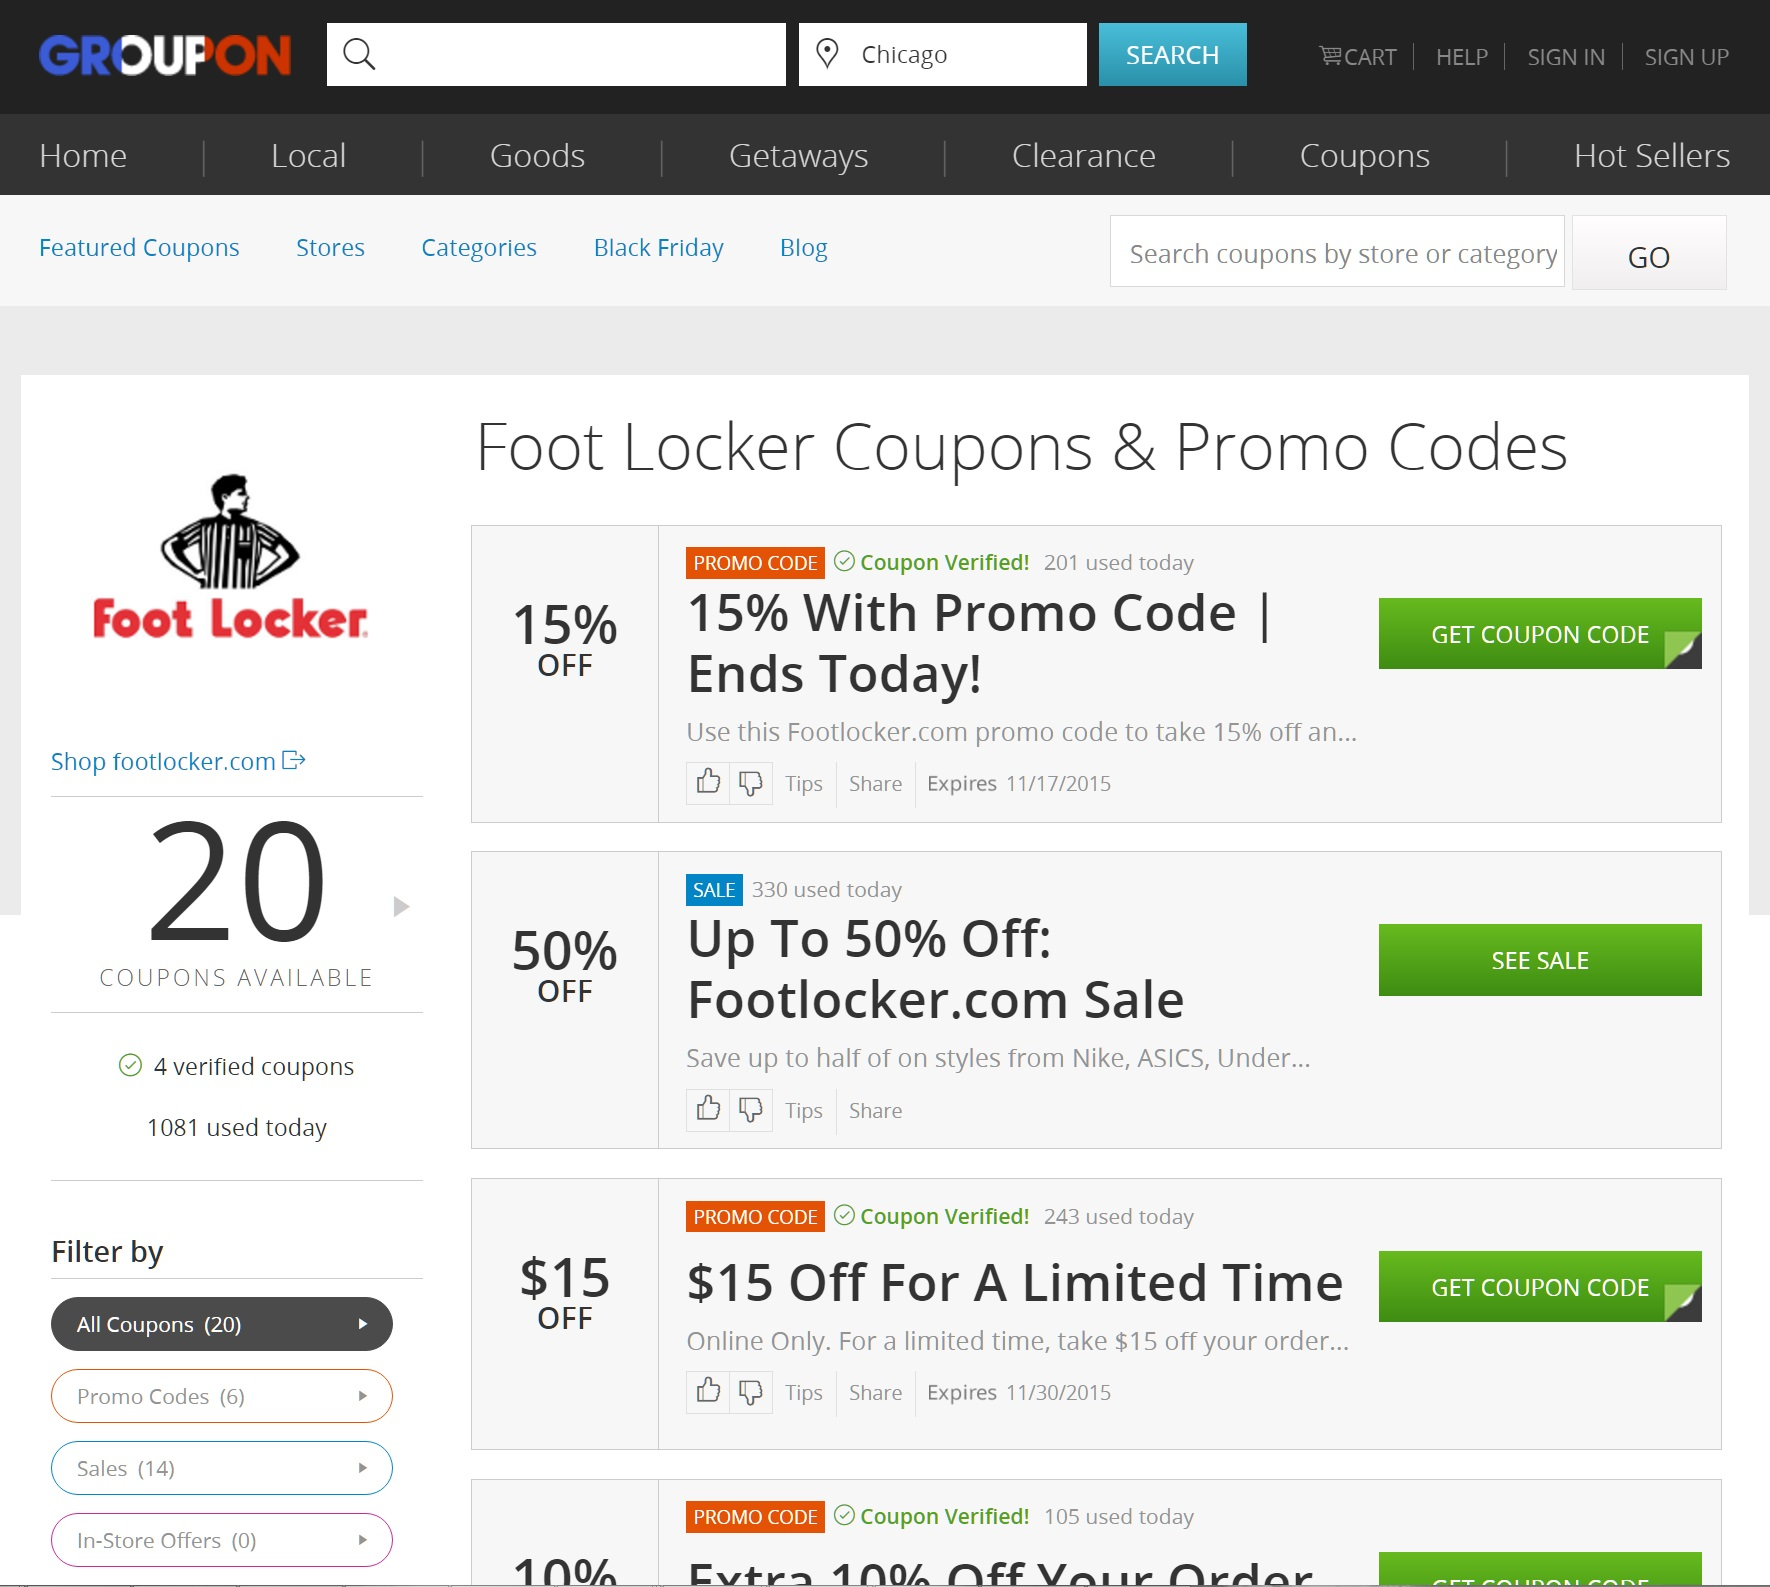 footlocker groupon coupons